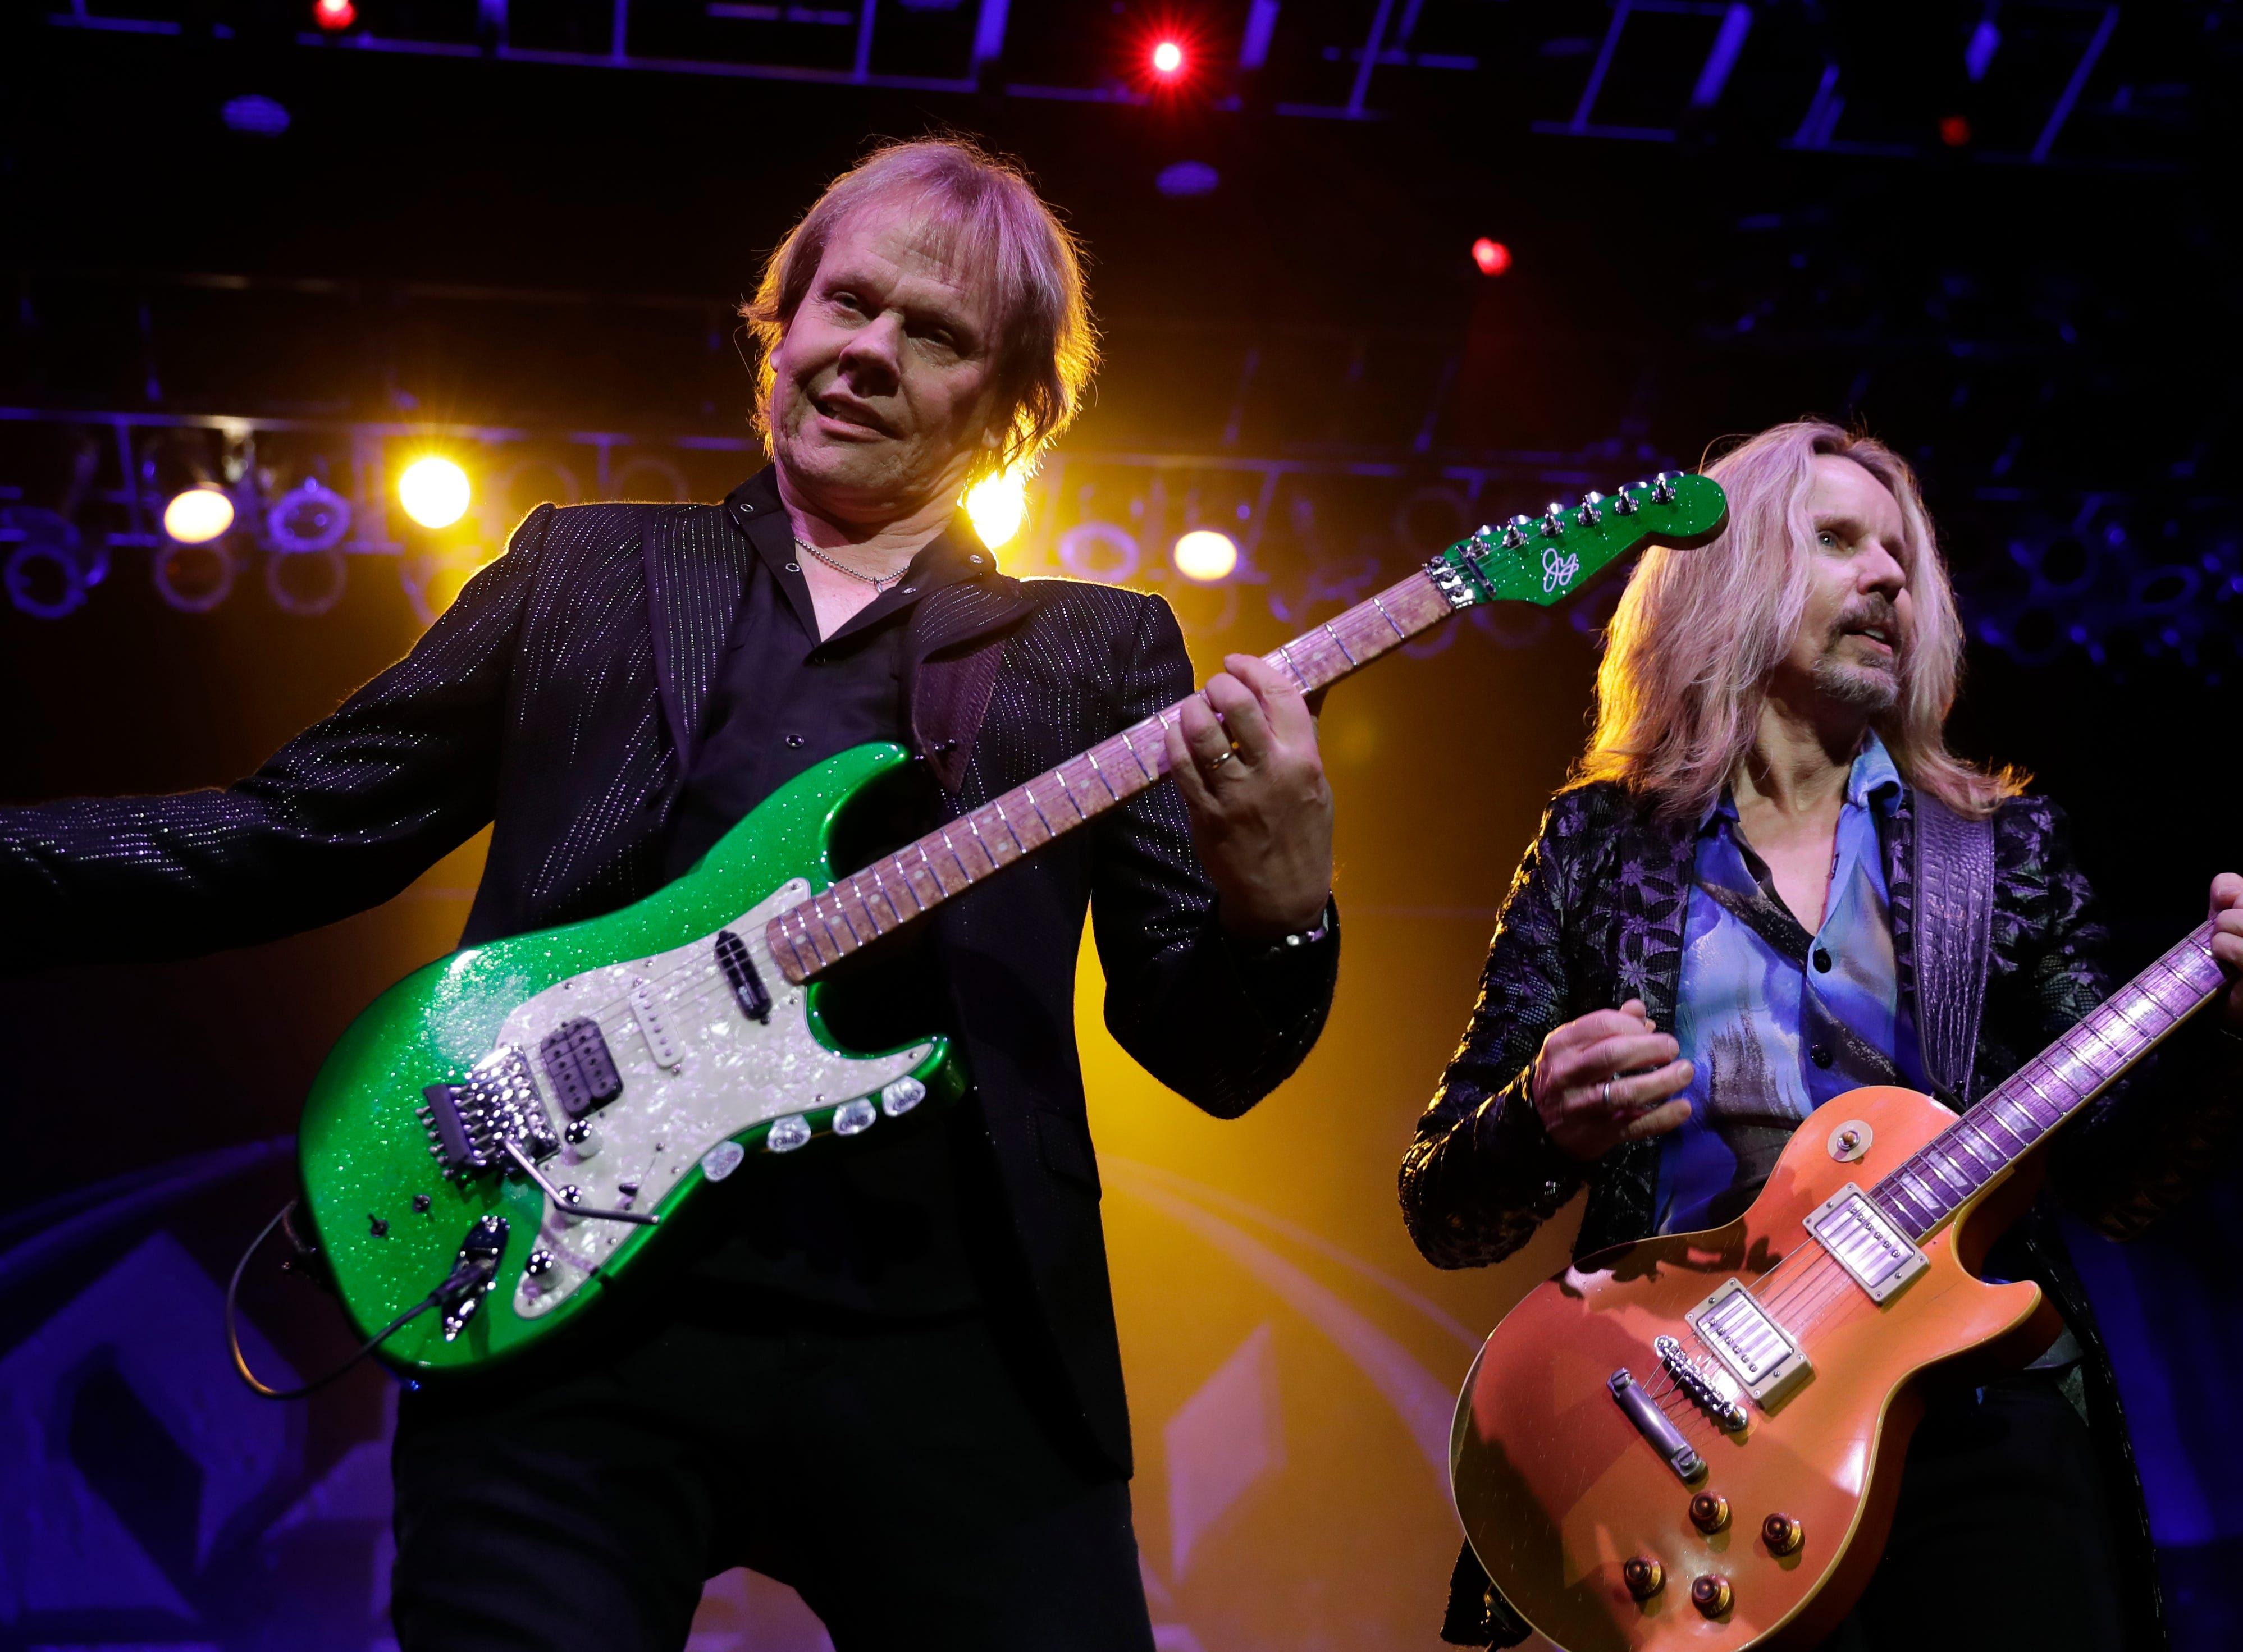 James Young and Tommy Shaw of Styx perform Dec. 29, 2018 at the Resch Center in Ashwaubenon, Wis.